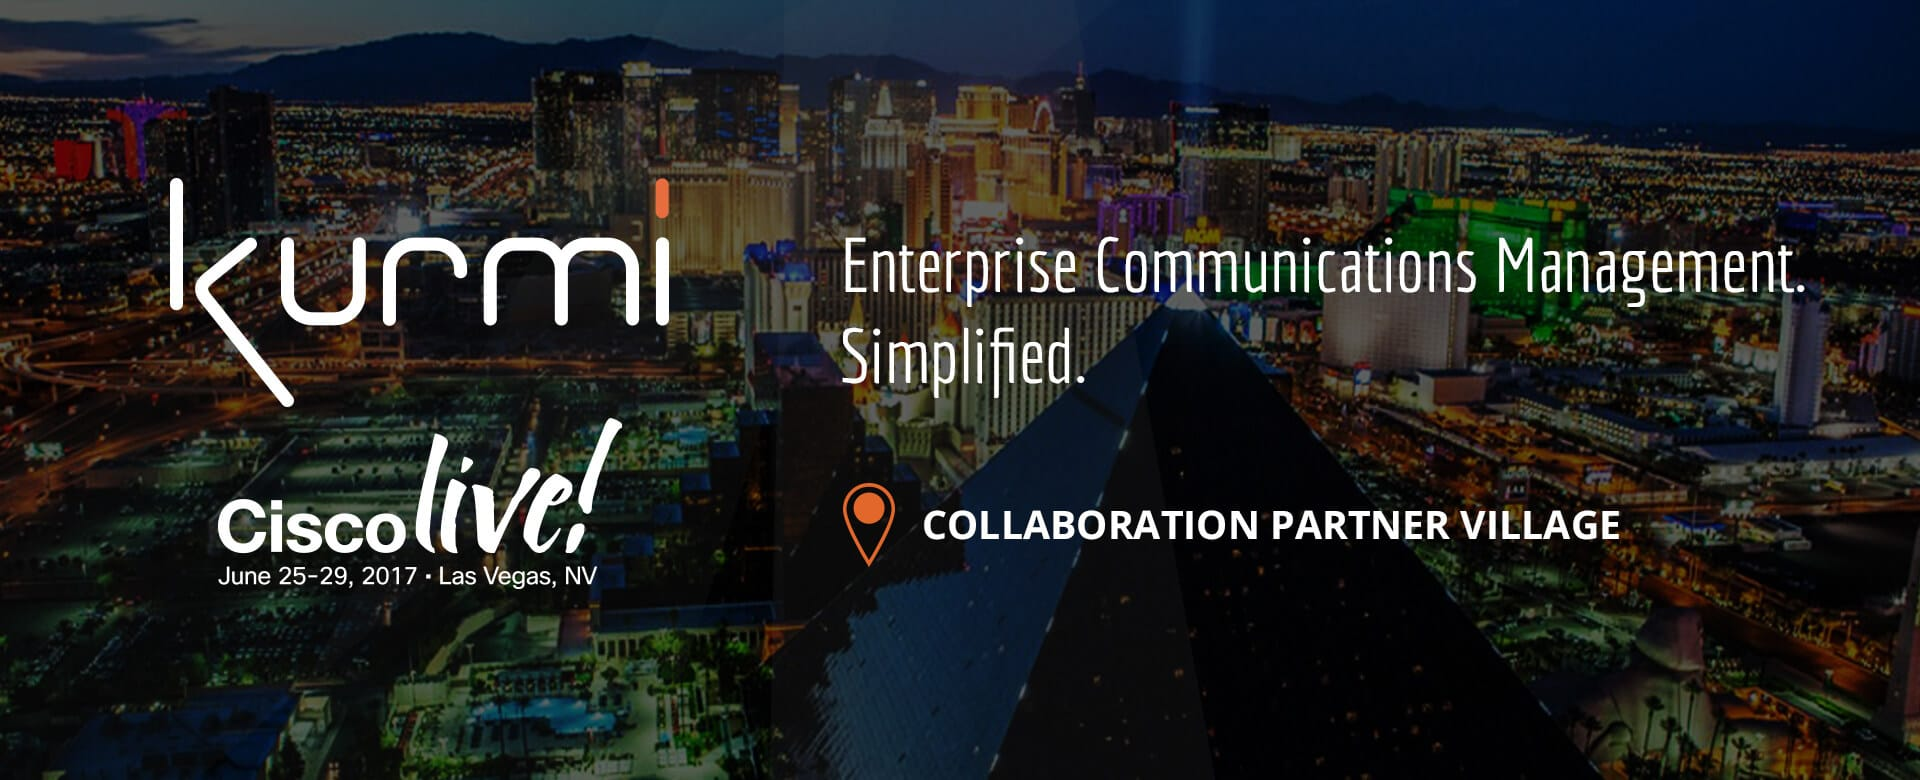 Kurmi @CiscoLive in Las Vegas, June 26–29, 2017